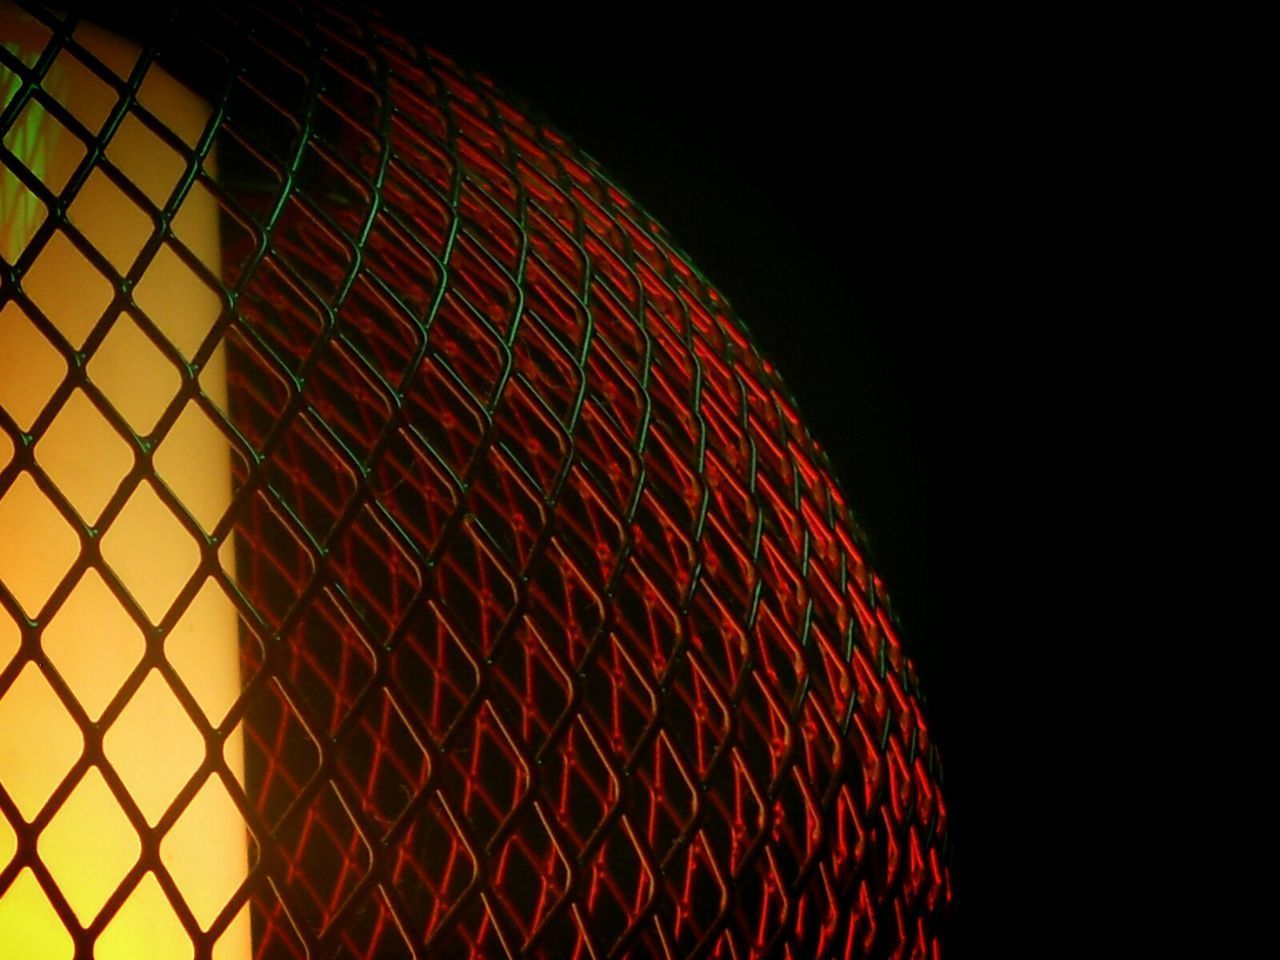 Close Up Technology Pattern Red Textured  Netting Close-up Night Black Background No People Closeupshot Close Up Photography Indoors  Iron - Metal Dark And Light Darkness And Light Design Interior Design From My Point Of View Eye4photography  EyeEm Best Shots Iron